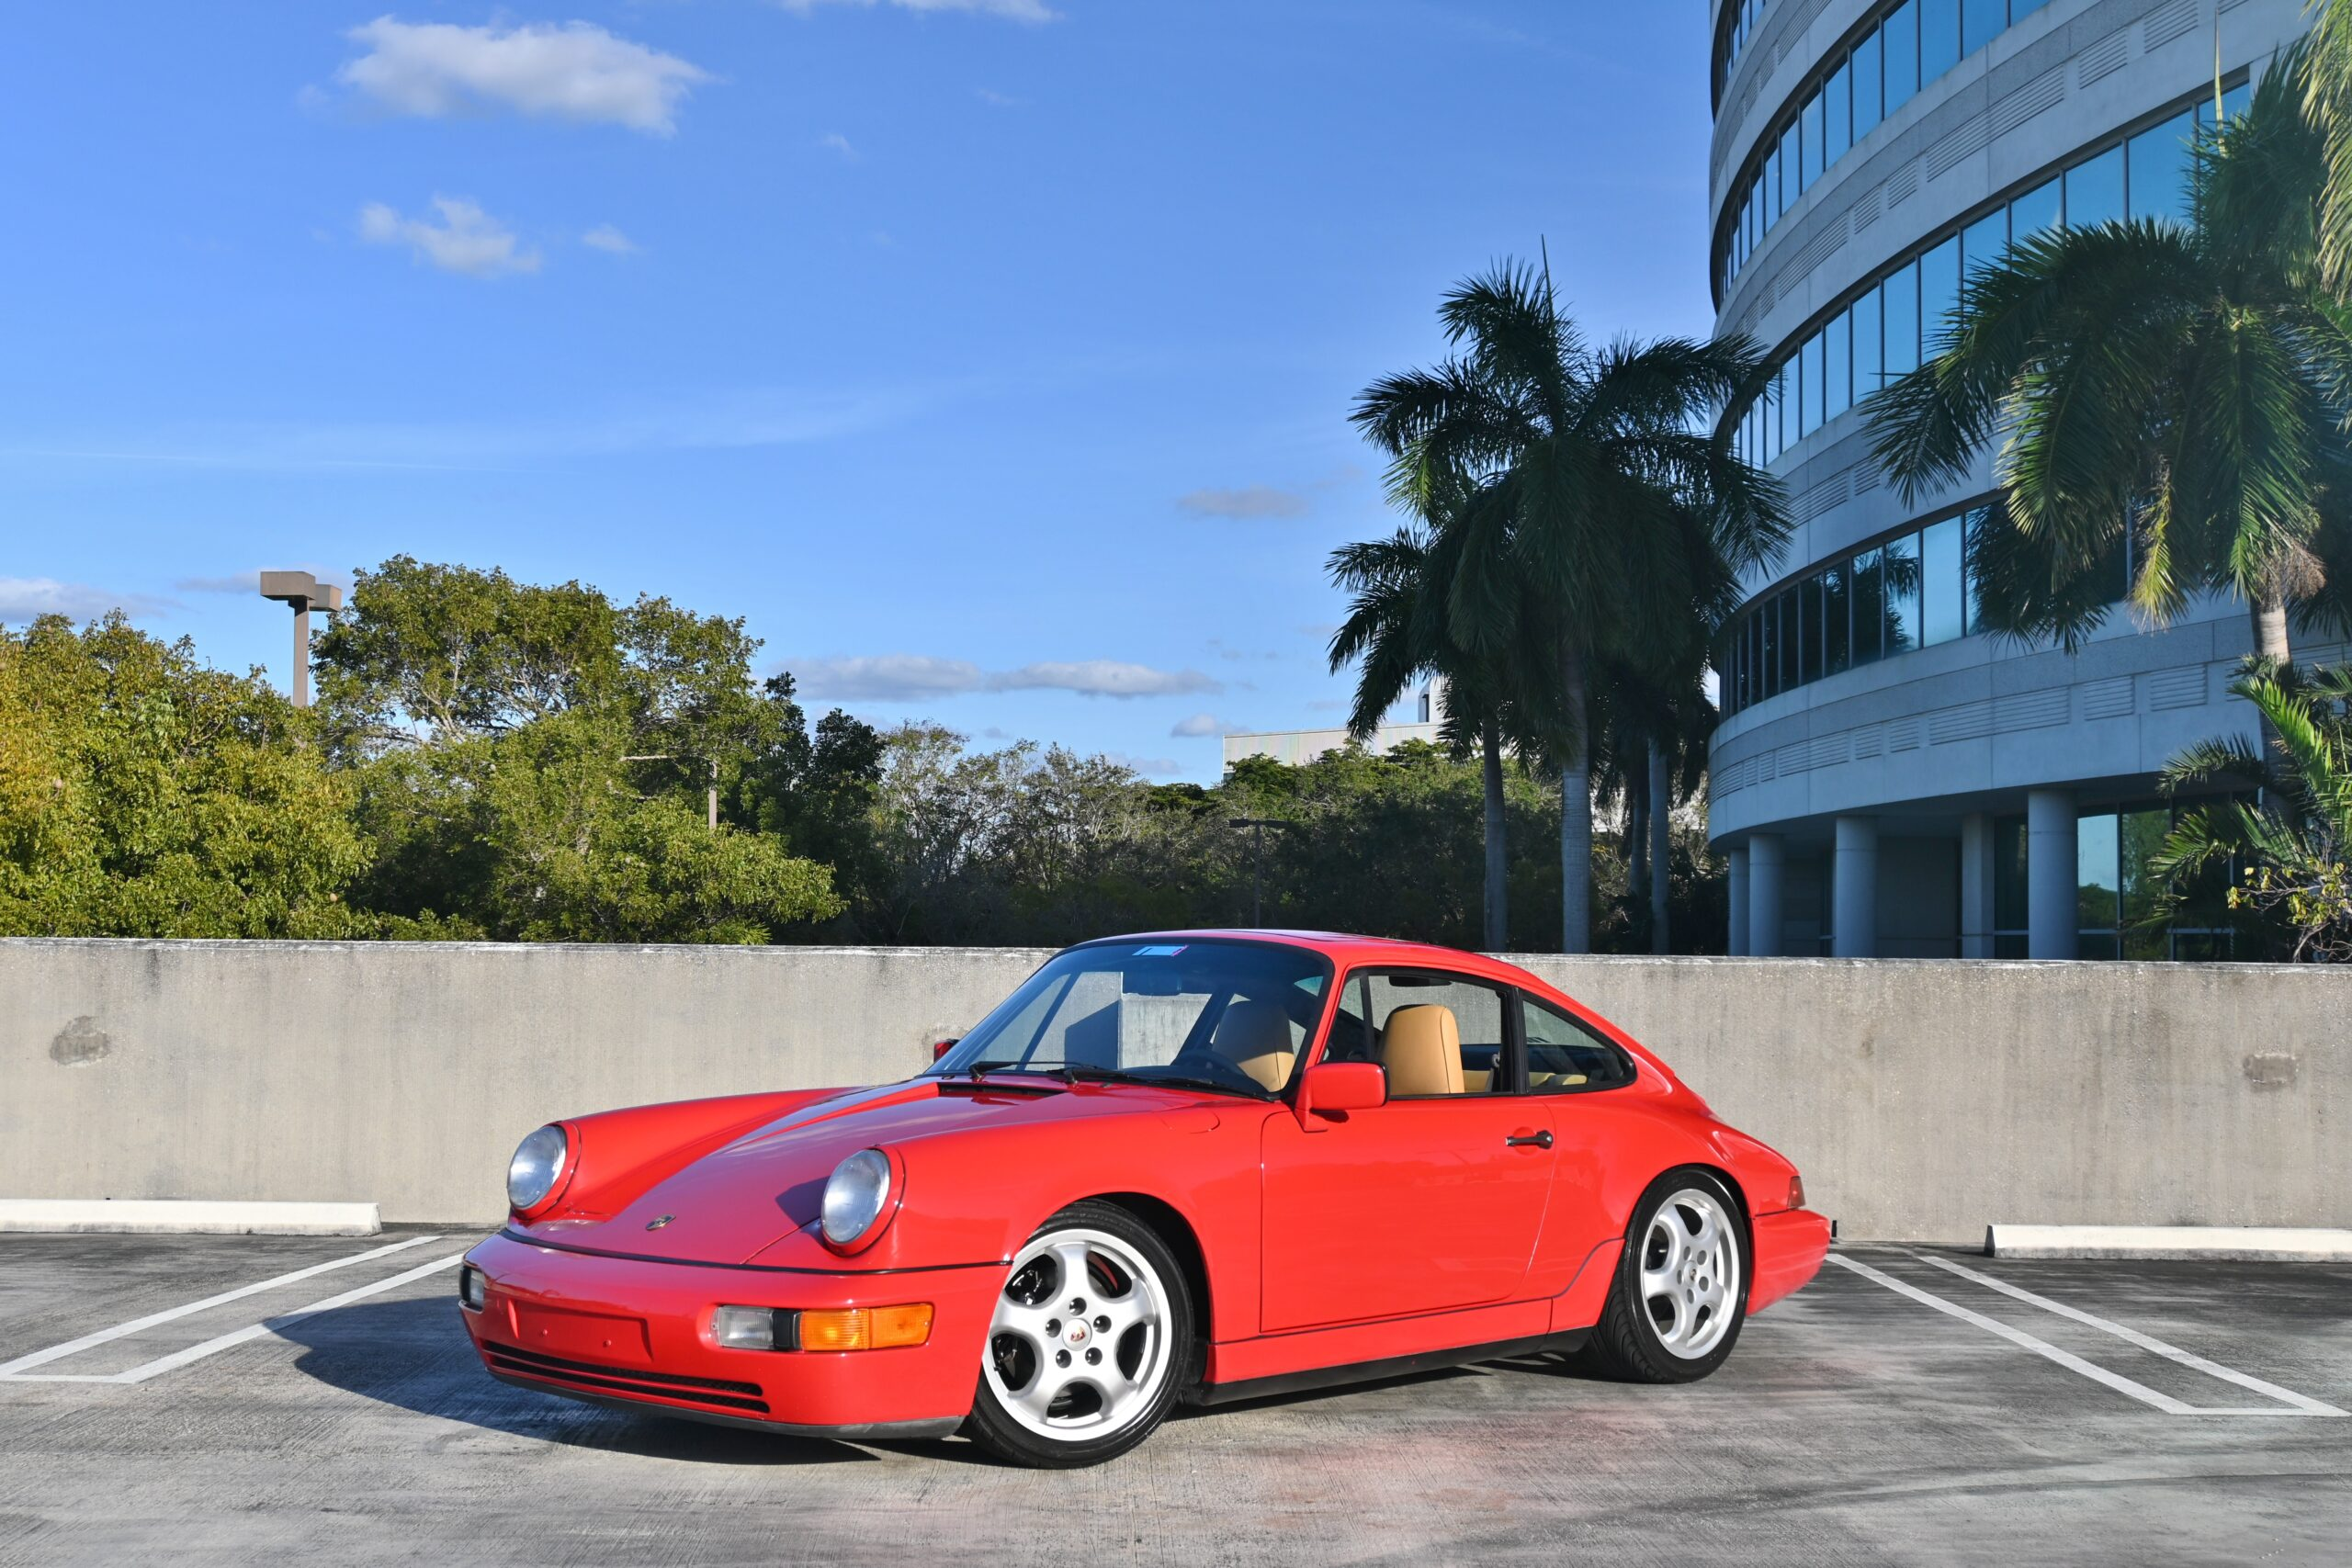 1989 Porsche 911 964 Carrera 4 California Car l 5 Speed Manual l Engine out Service l Documented Service History